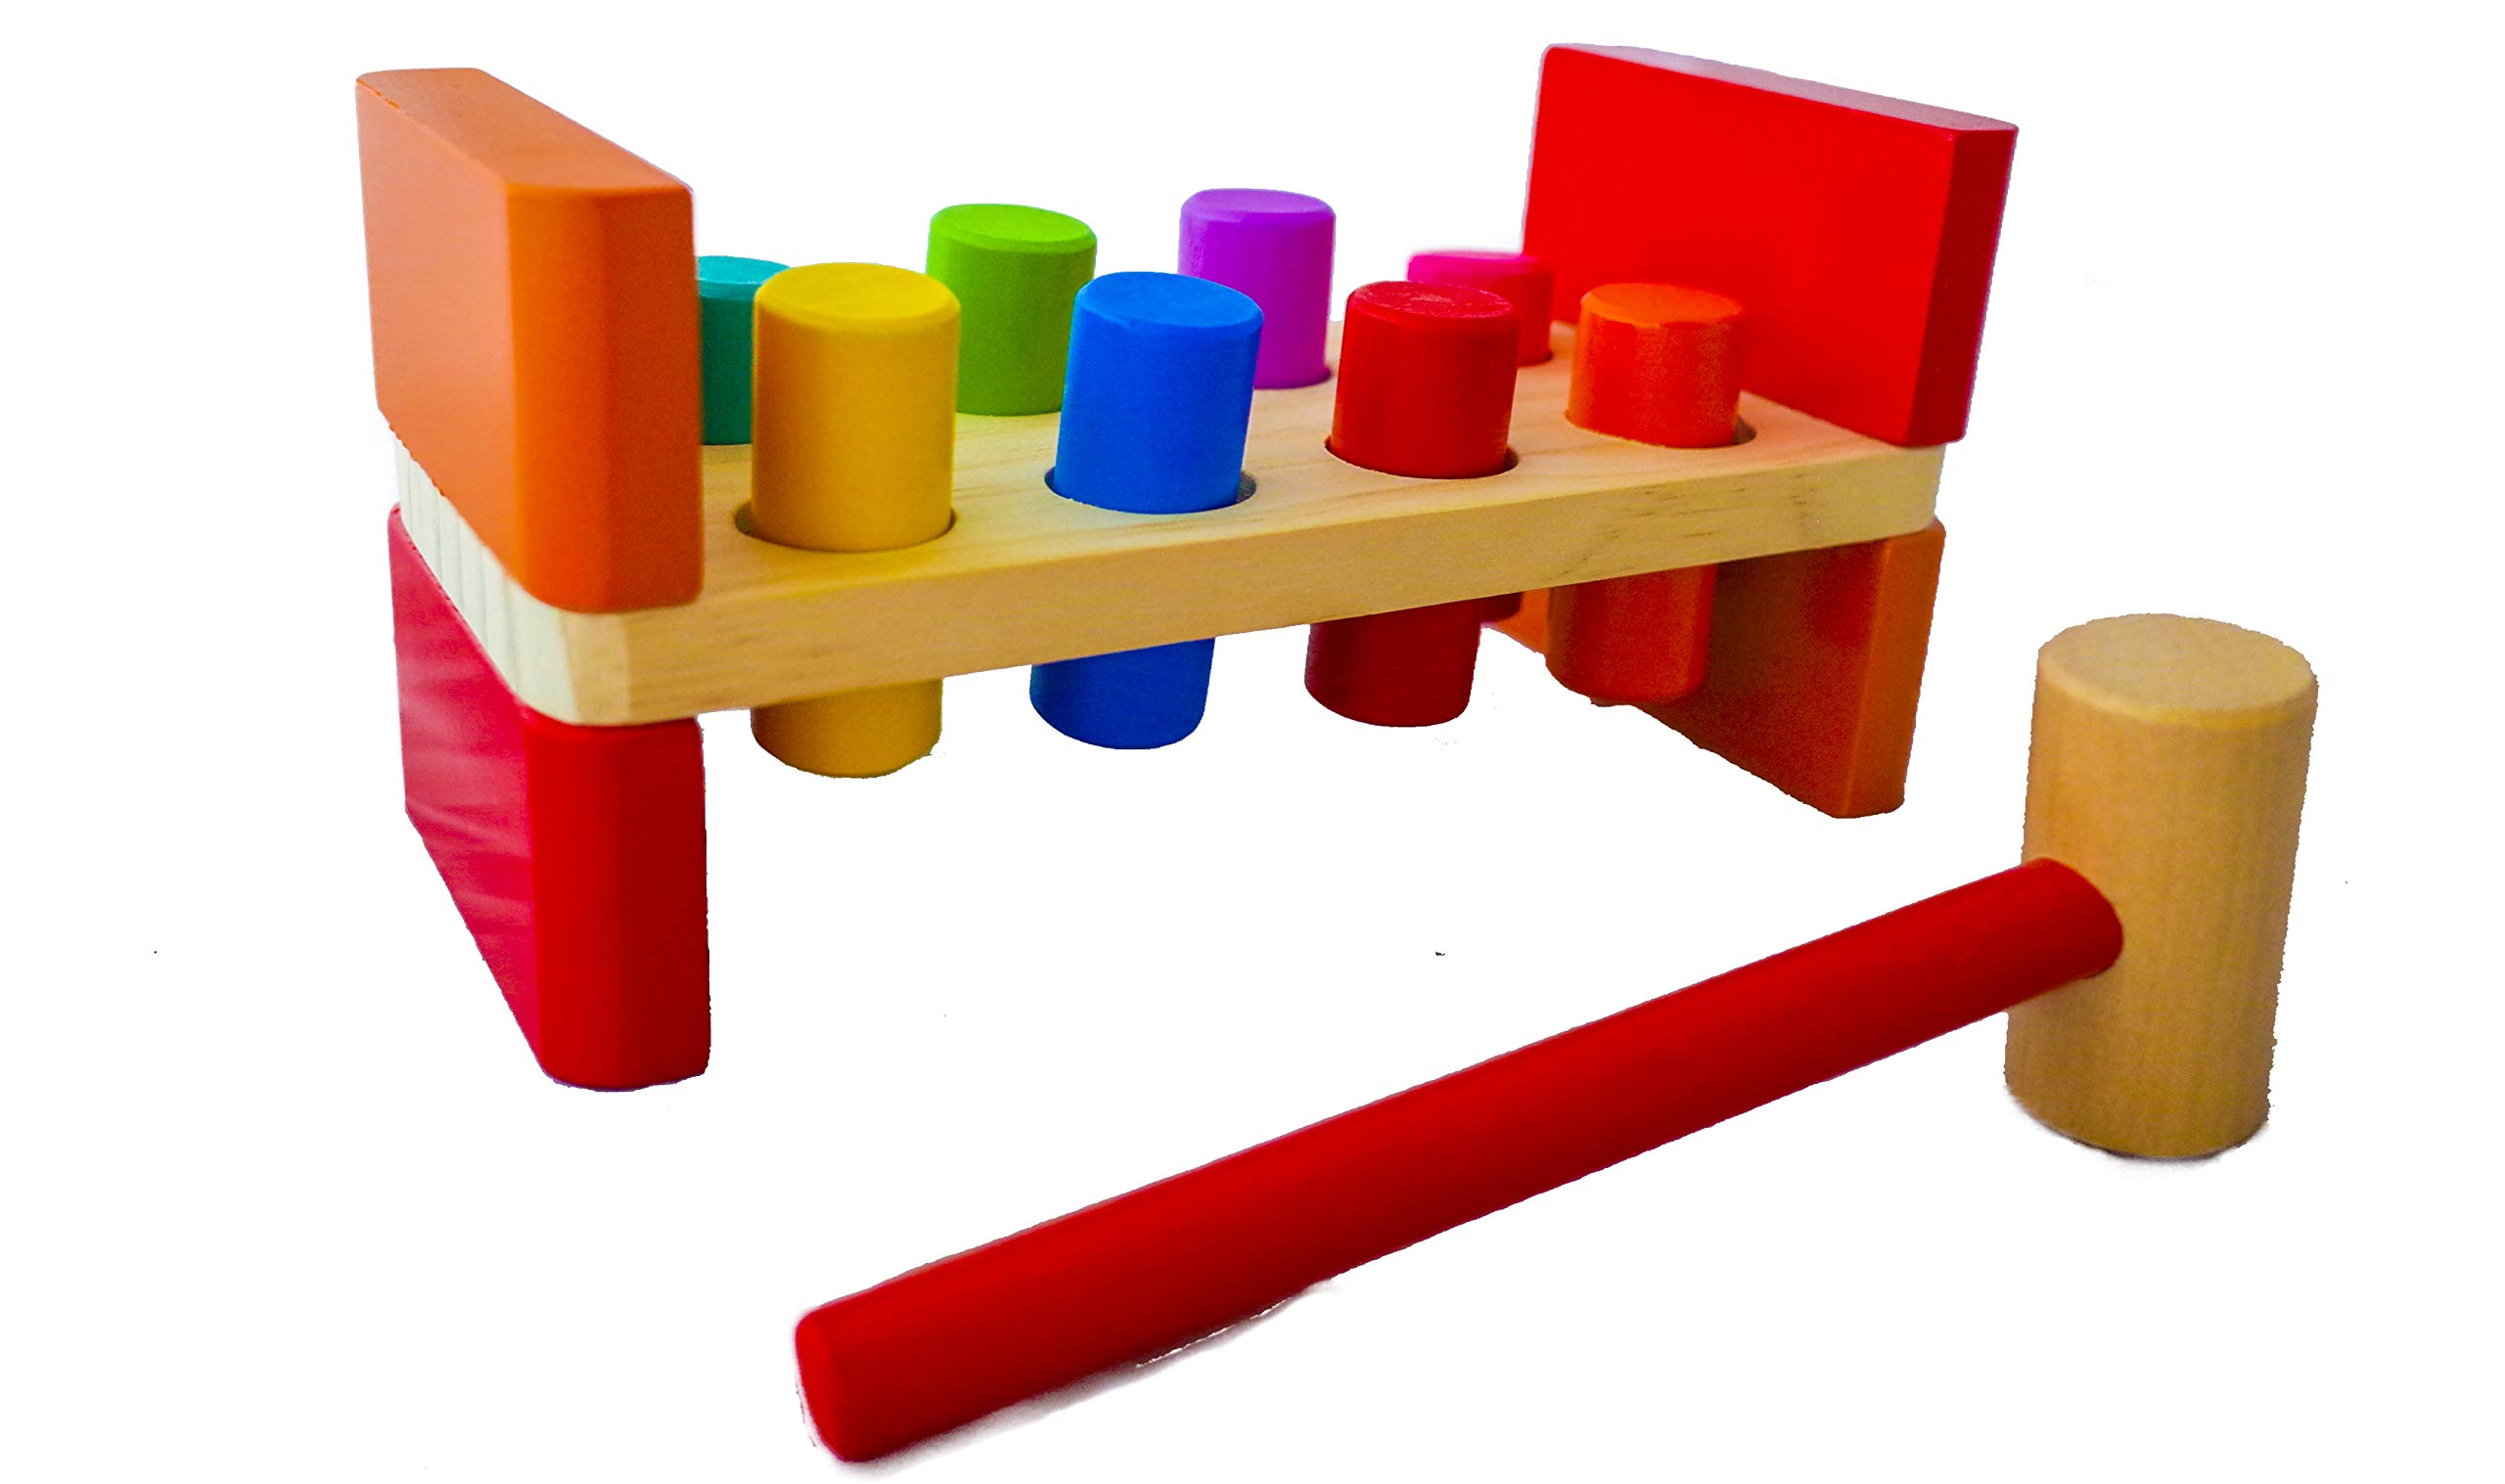 Pounding Bench Wooden Toy with Mallet - Hammering Block Punch and Drop Instruments - Hammer and Peg Board - Best Gift for Toddler Boy or Girl - Montessori